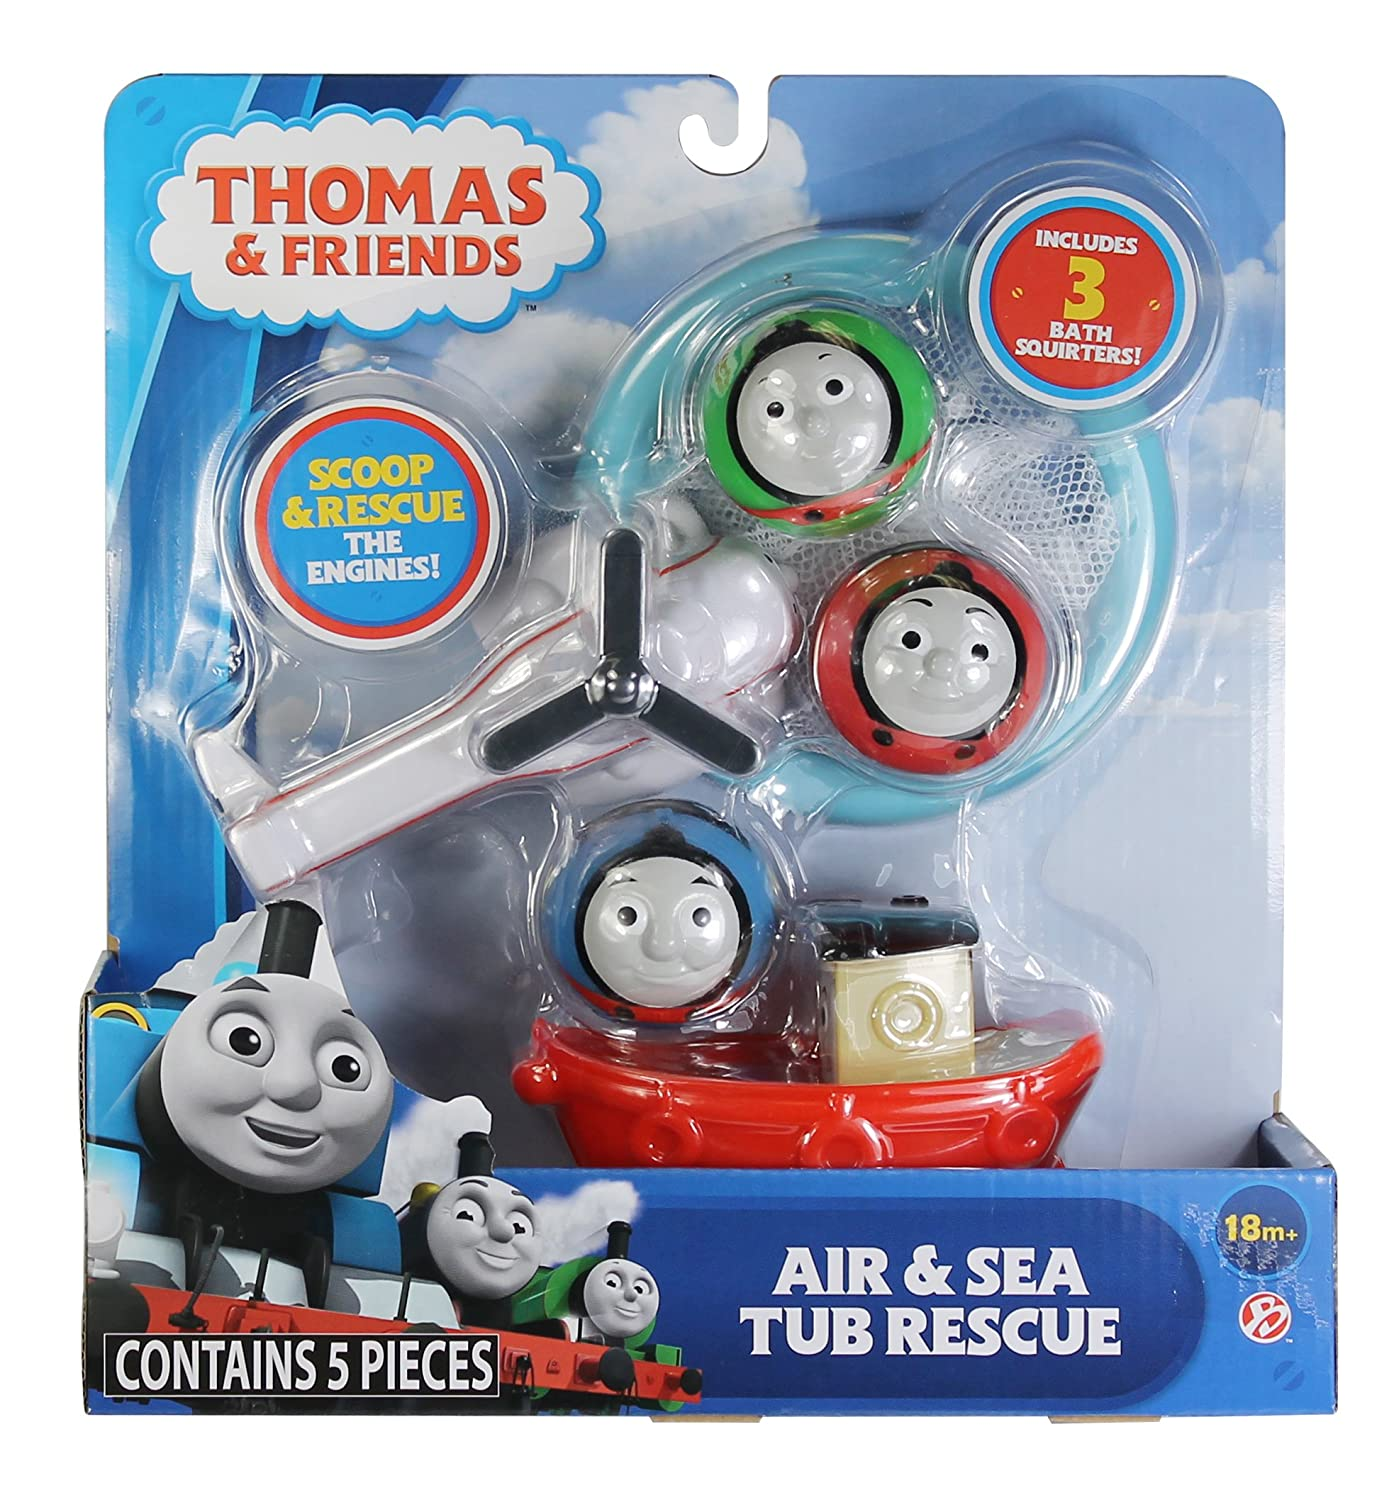 Amazon.com: Basic Fun Thomas & Friends Air & Sea Rescue Bathtub-Toys ...